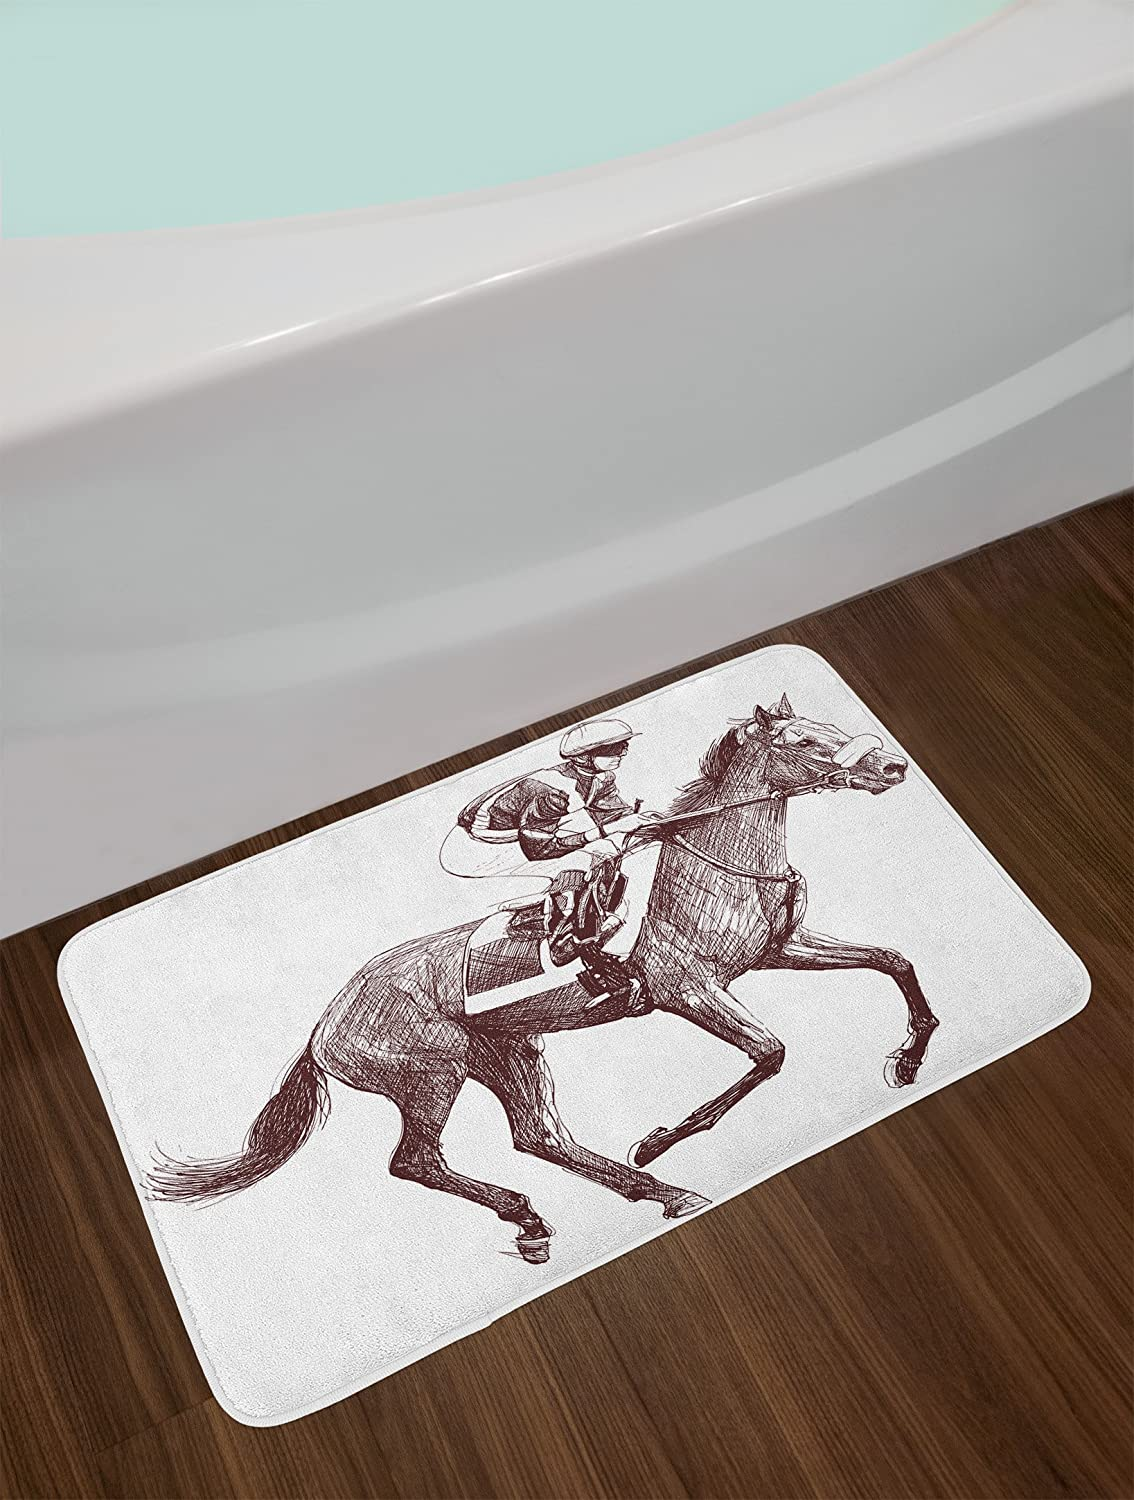 Vintage Artful Film Cinema Icons Motion Camera Action Record Graphic Style Print 29.5 W X 17.5 W Inches Lunarable Movie Bath Mat Black White bath/_26235 Plush Bathroom Decor Mat with Non Slip Backing